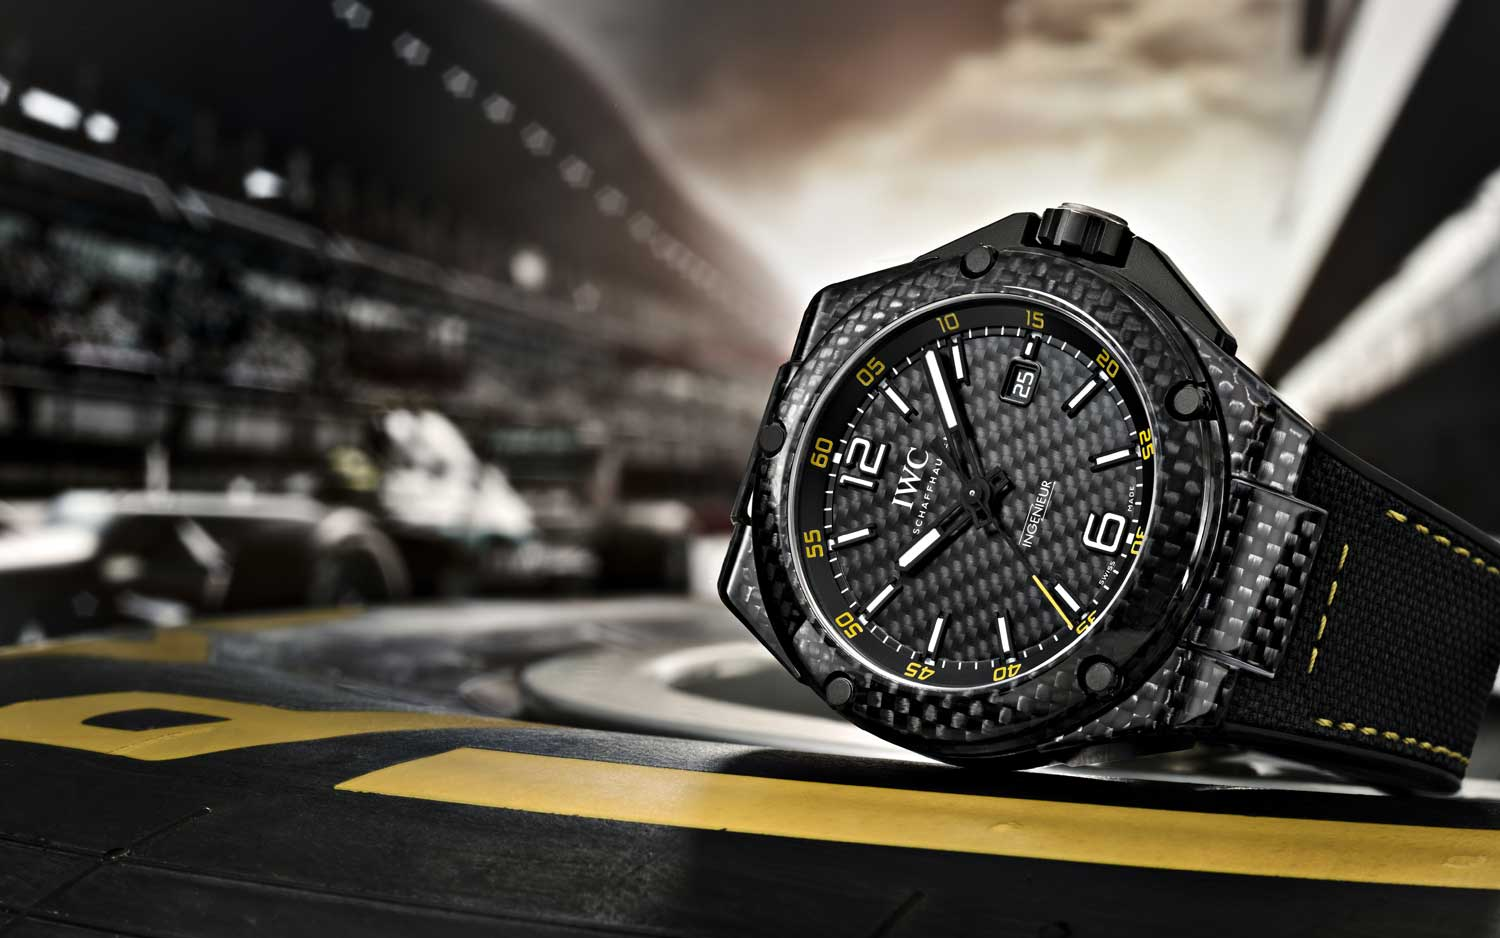 Watches and Formula 1 – Episode 3 - Mercedes AMG & IWC Schaffhausen.